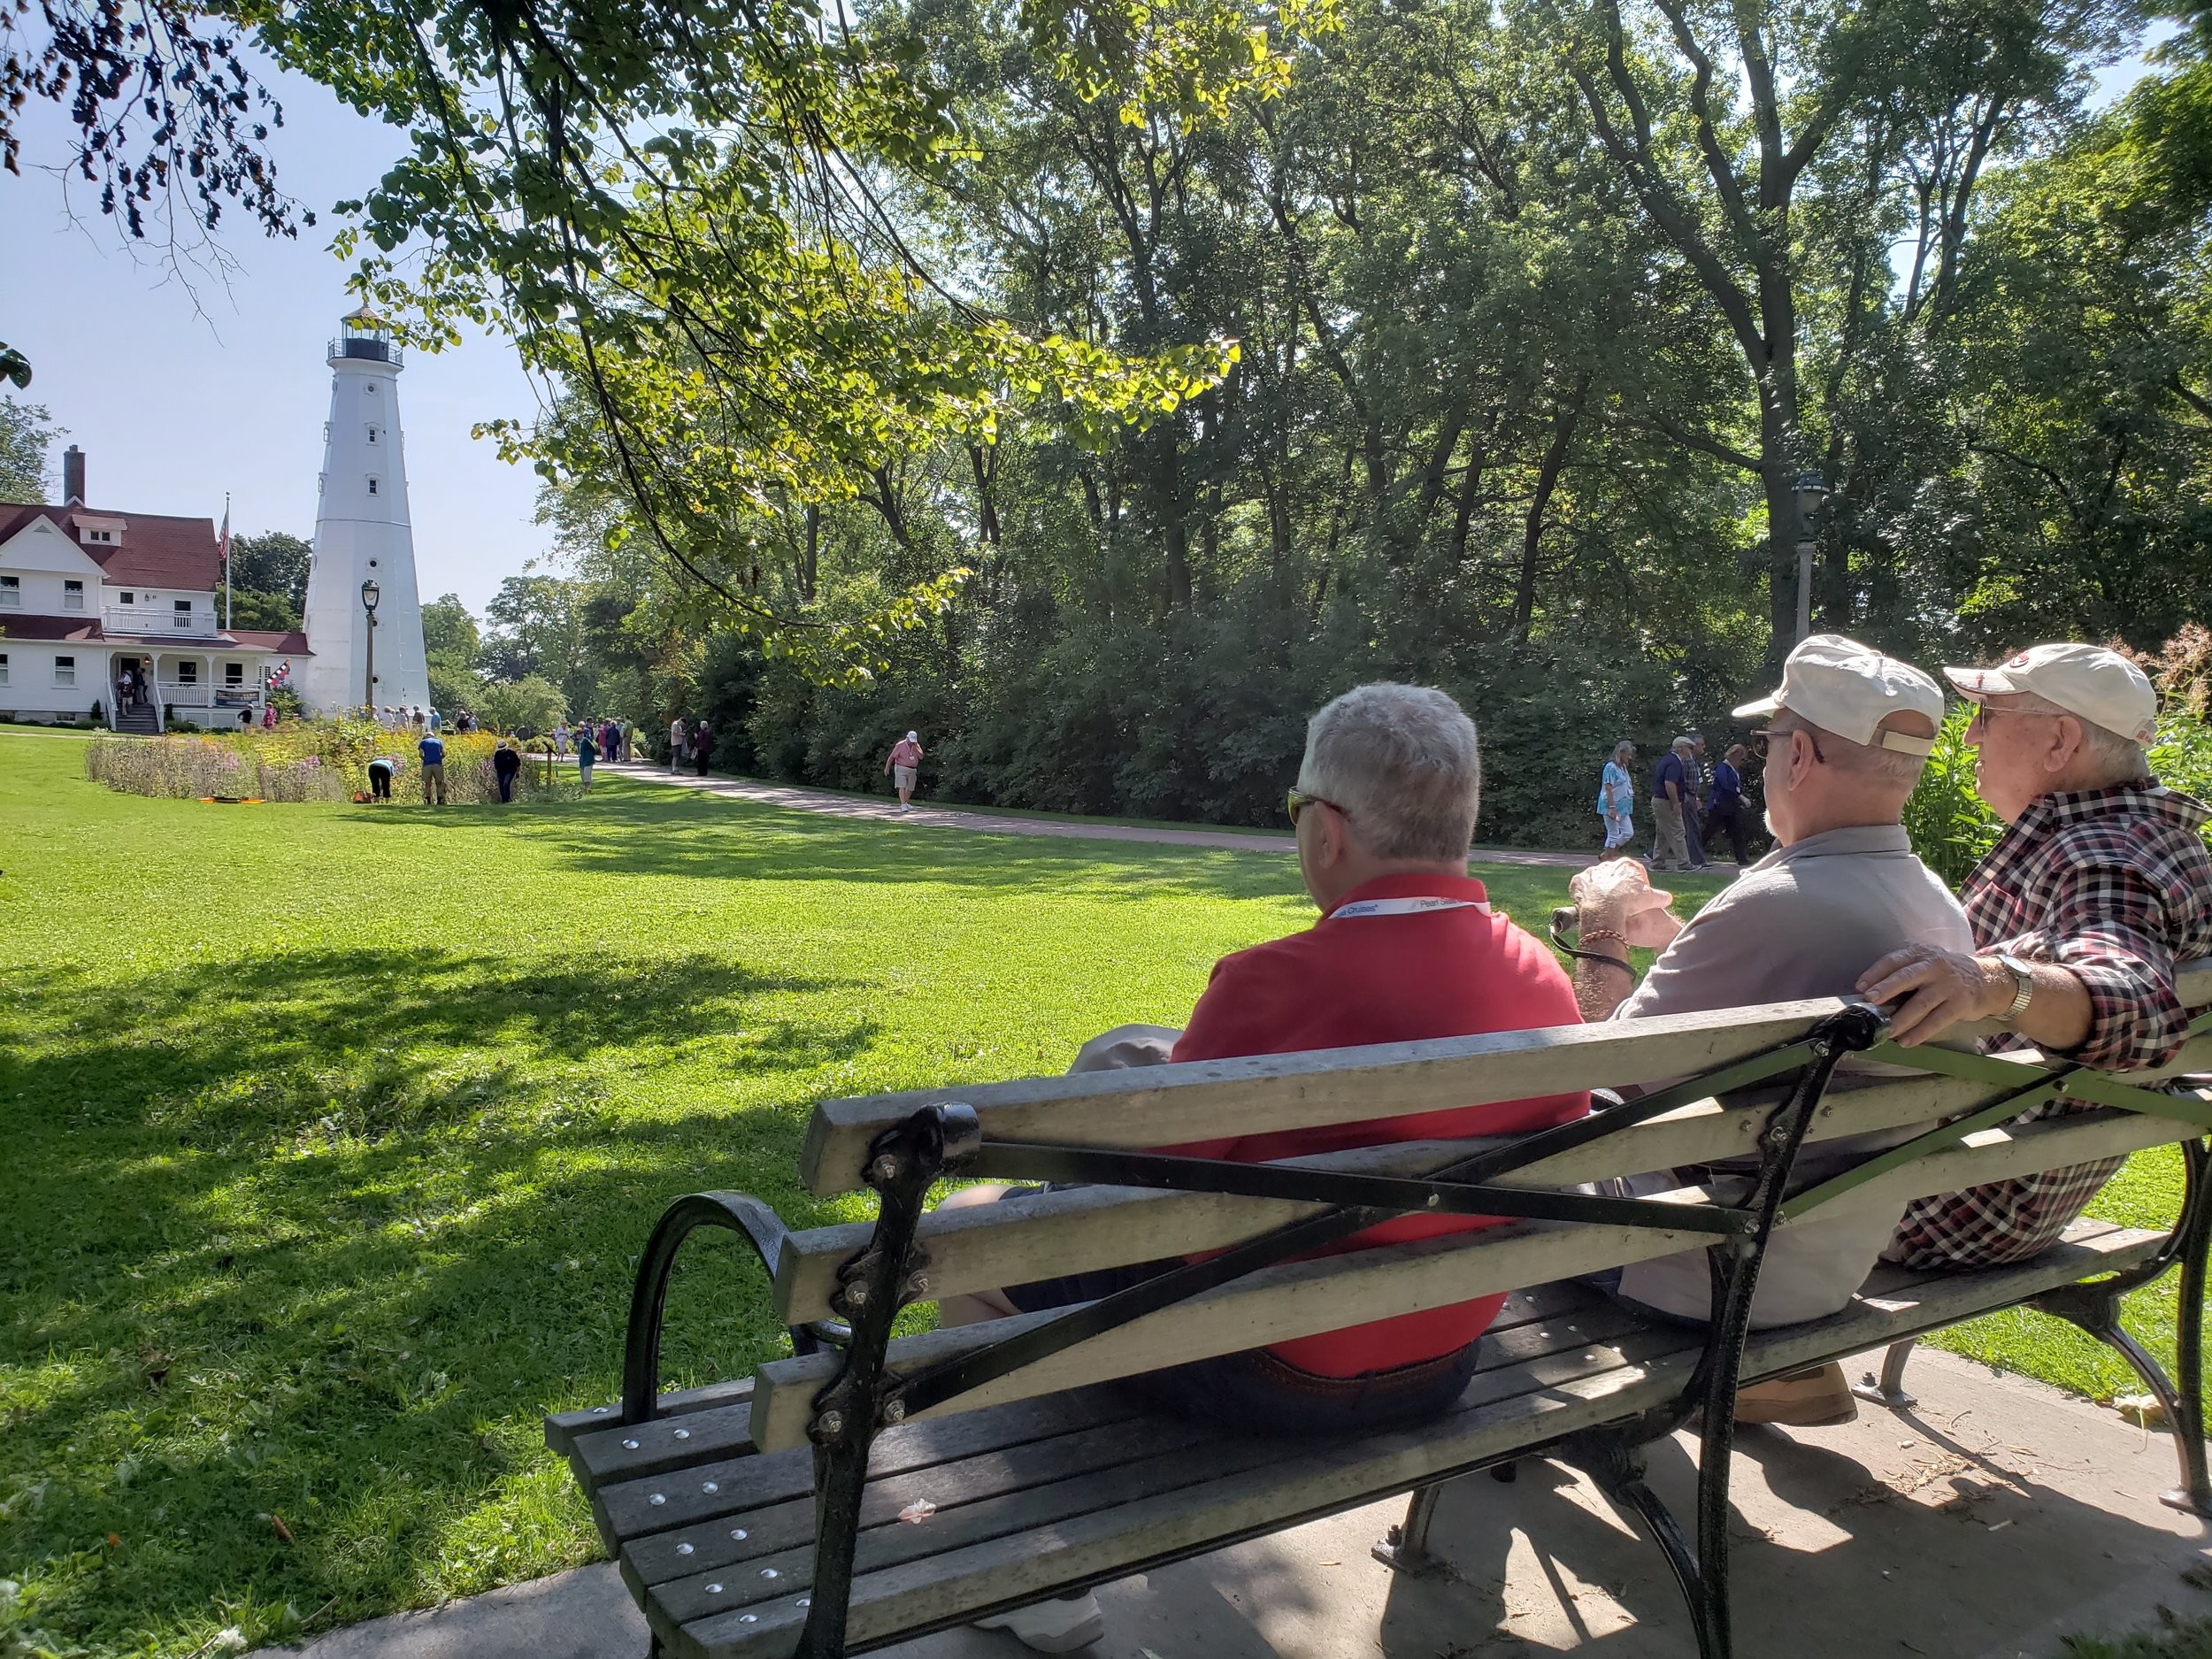 Passengers sit back to enjoy an overlook at the North Point Lighthouse while touring town with Milwaukee Food & City Tours.